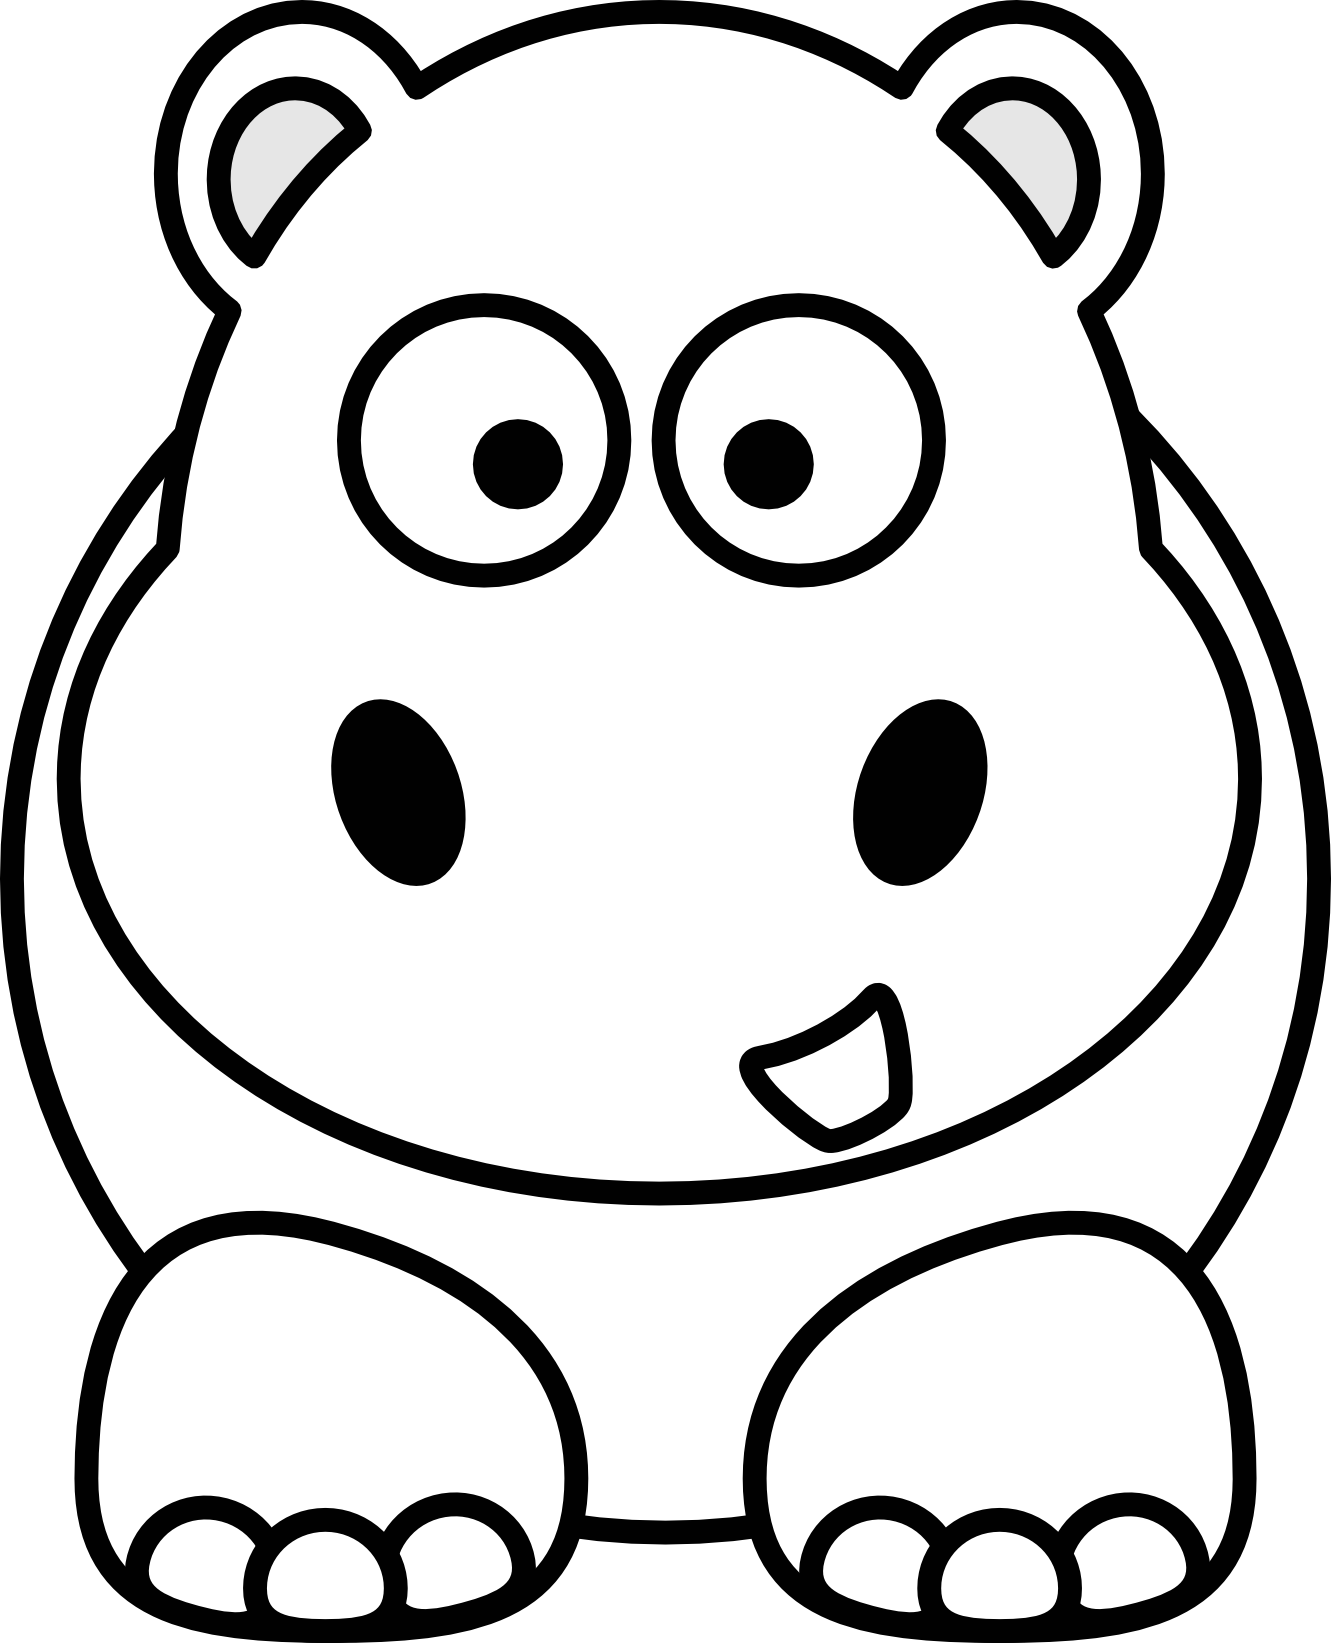 Free black and white animal clipart images